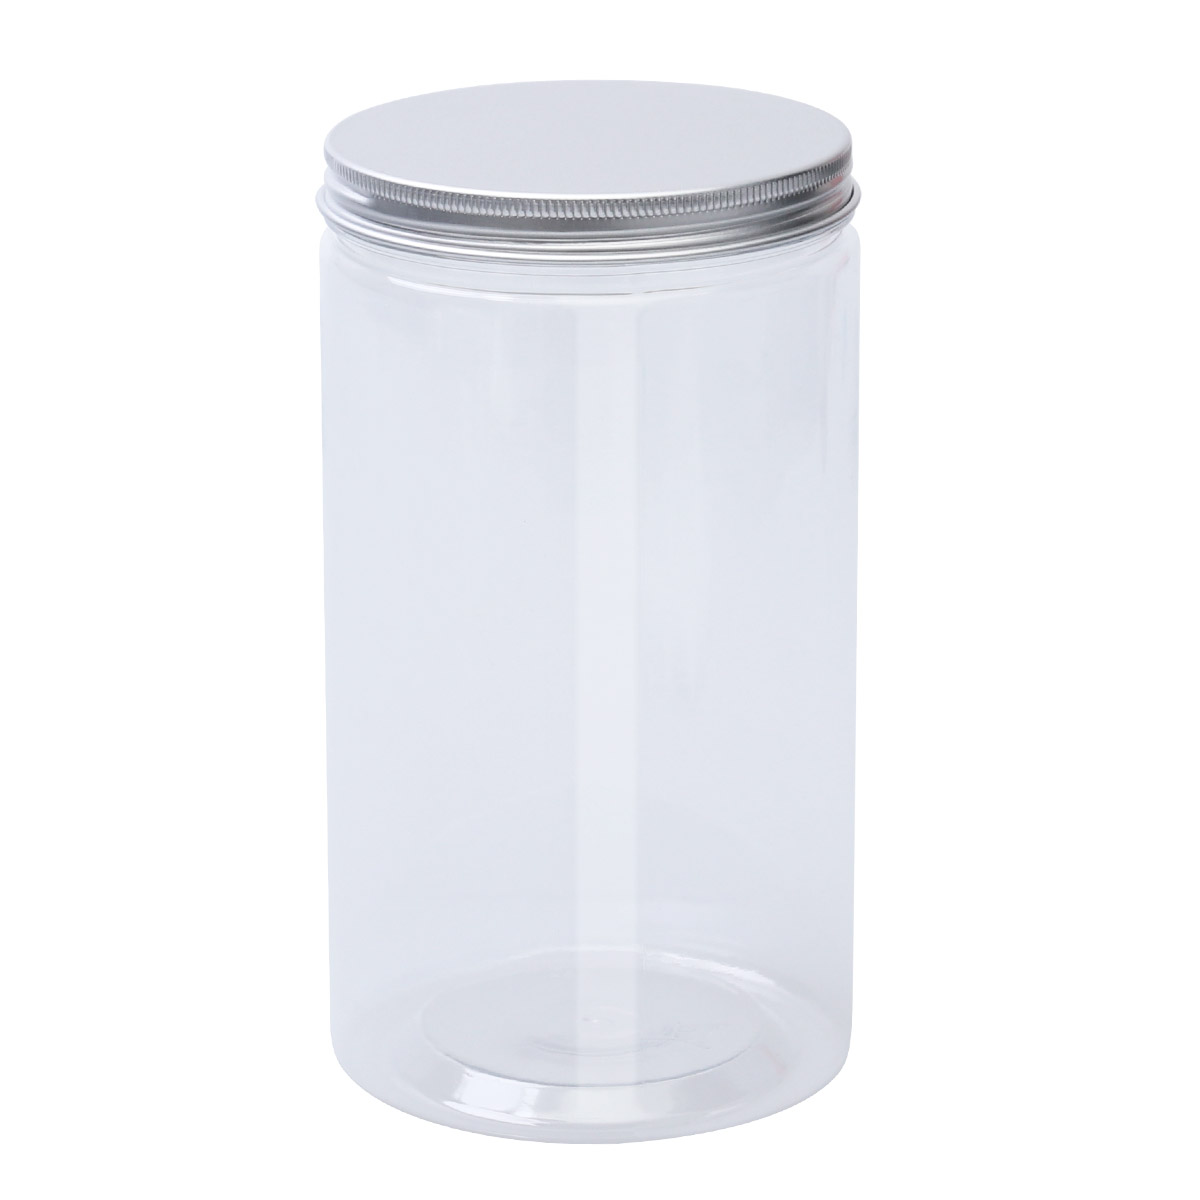 1Pc Sealed Jars Durable Plastic Non-toxic 1280ml Empty Bottle Storage Containers For Scented Tea Food Cream Lotion